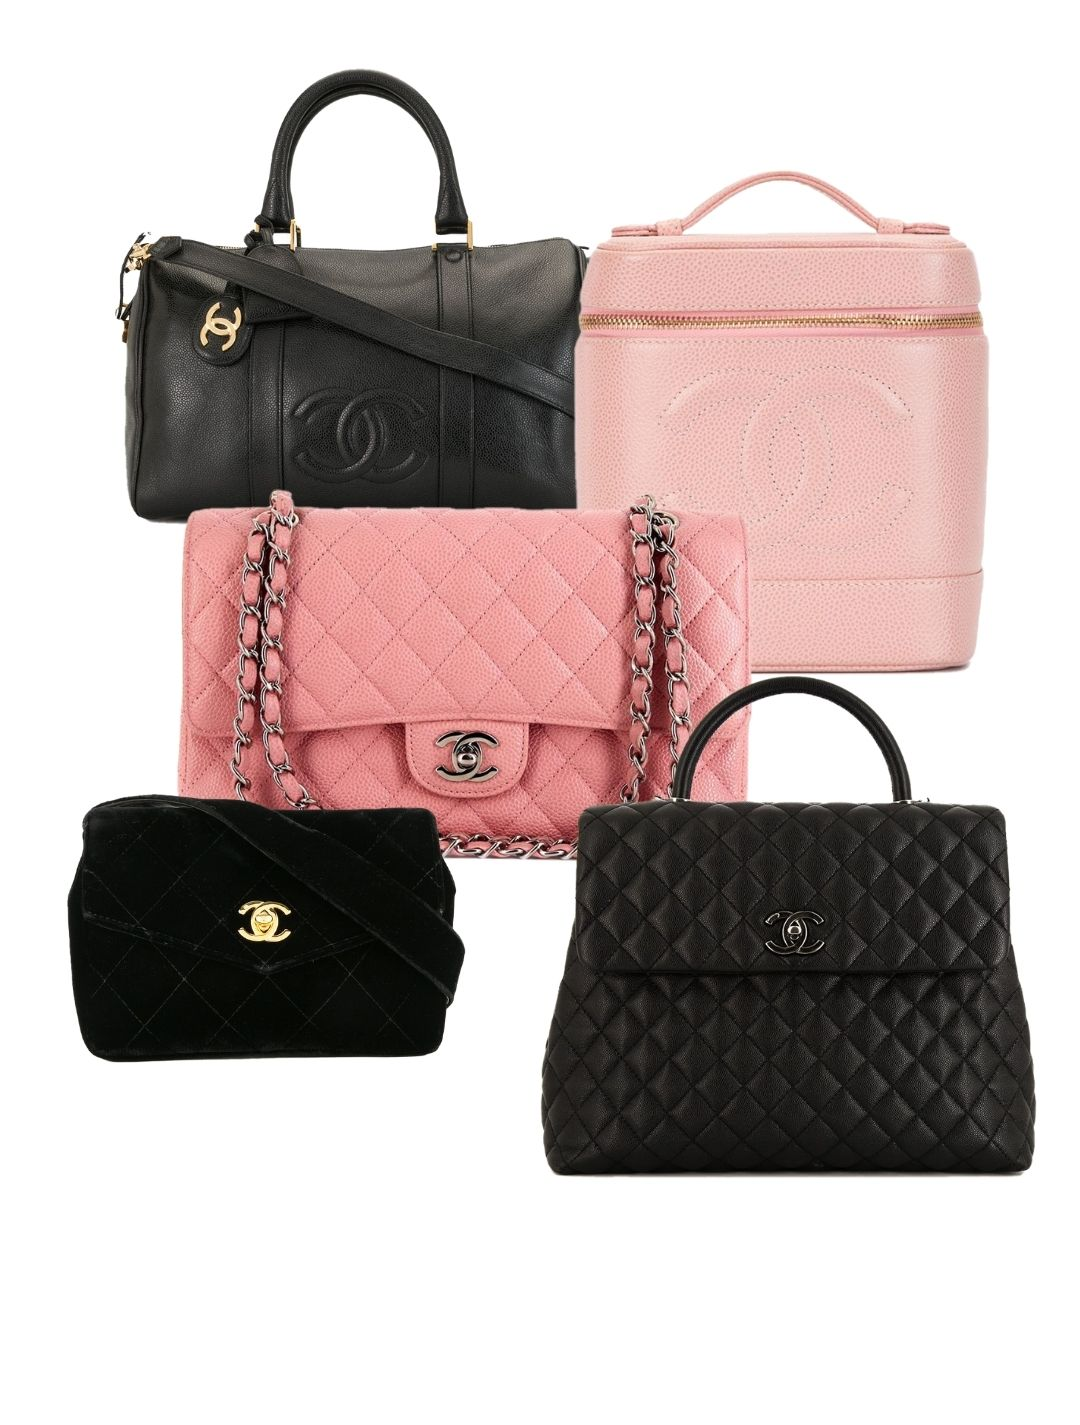 pink and black chanel handbags